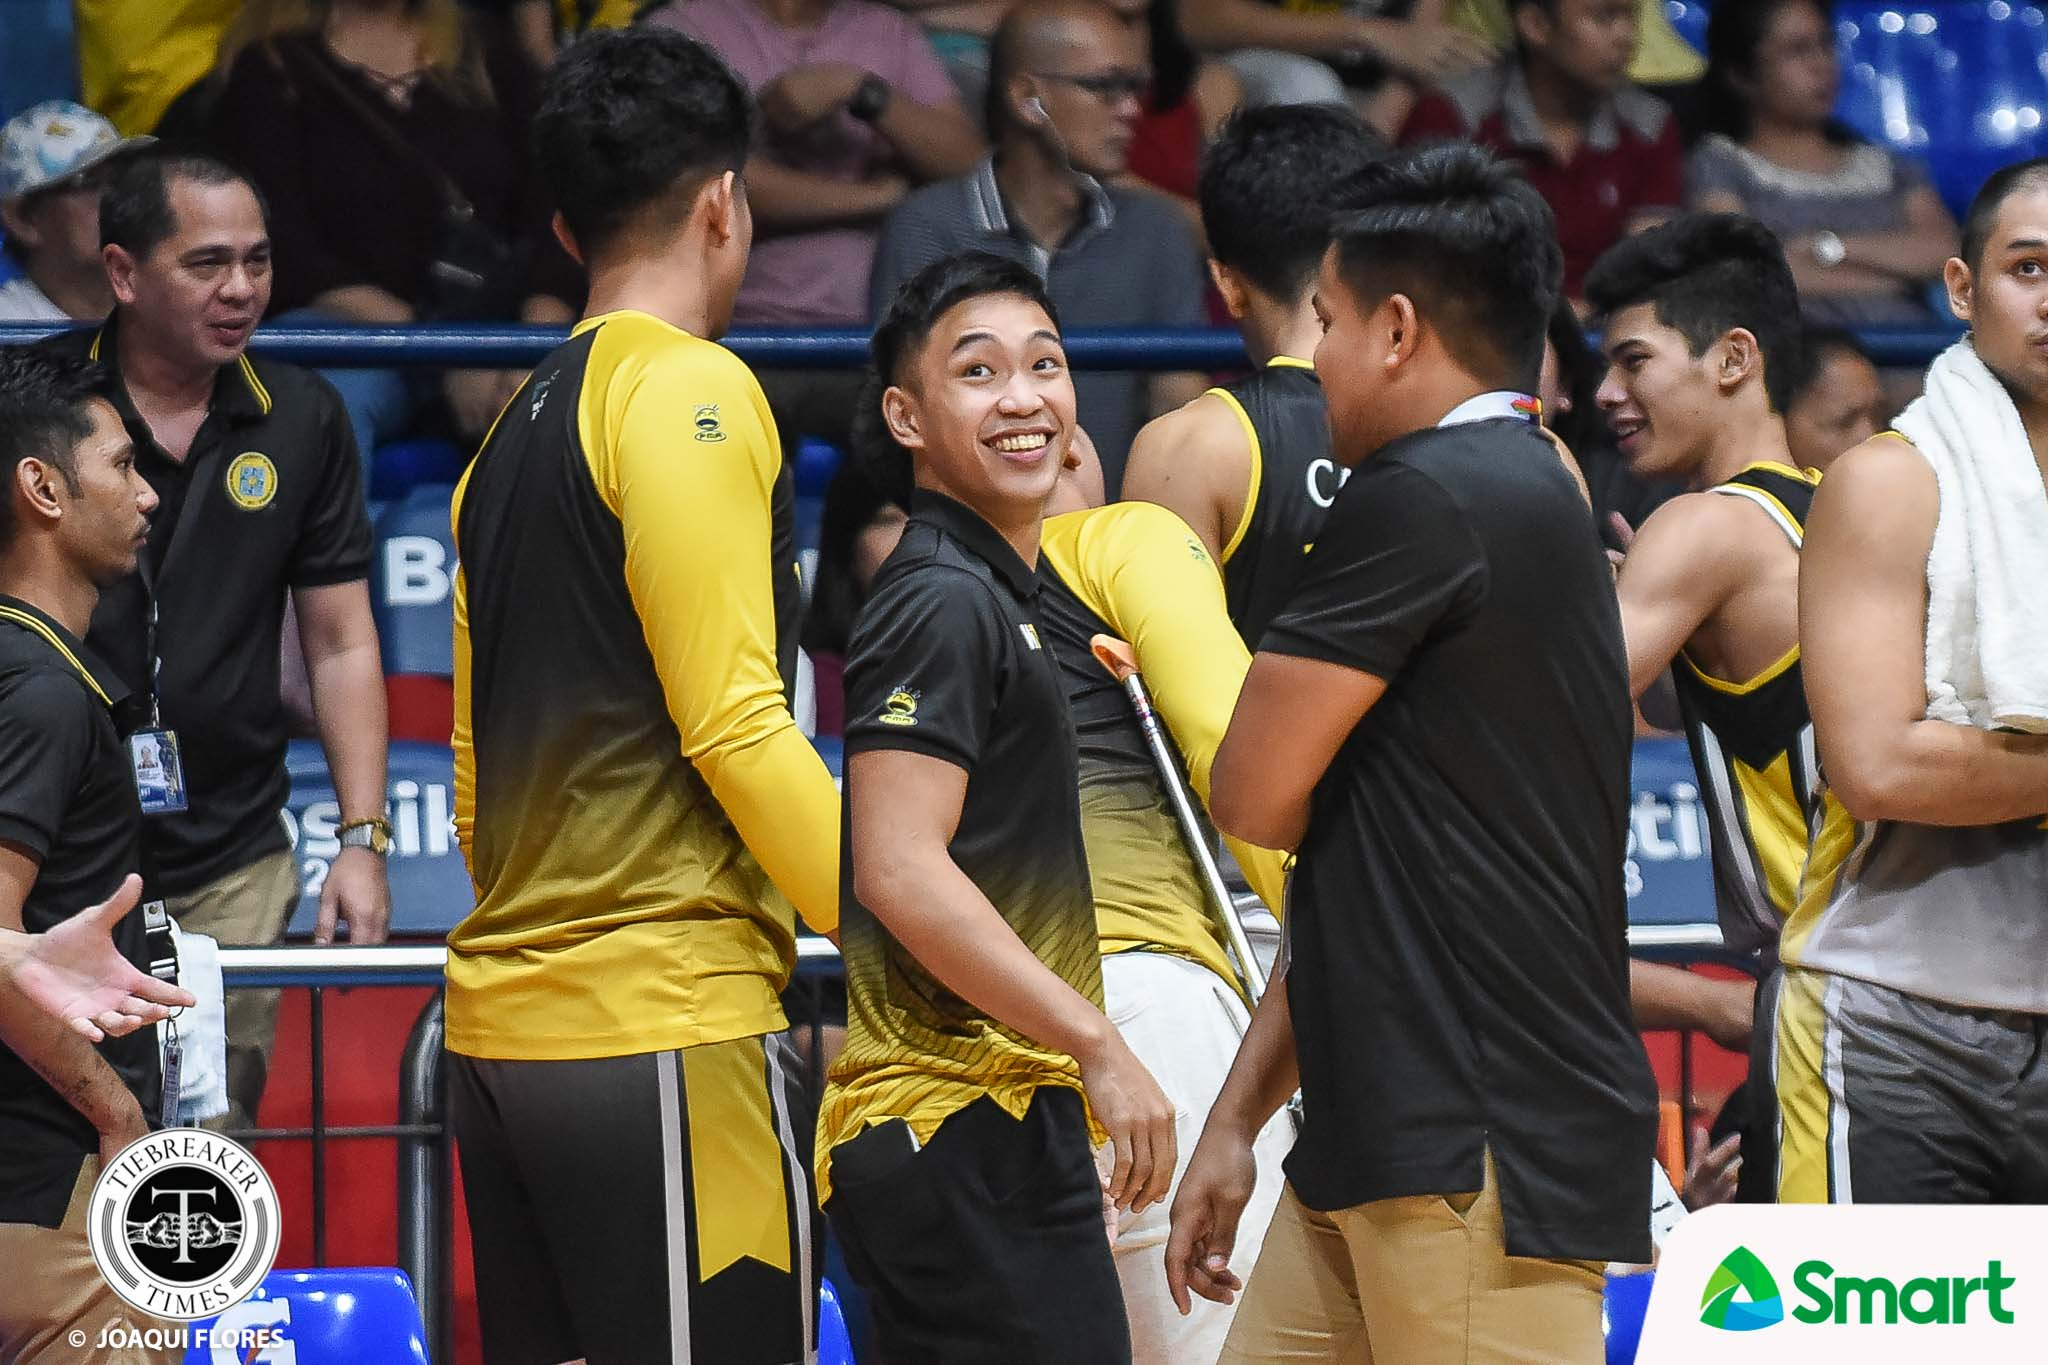 Tiebreaker Times Aldin Ayo, UST bracing for the worst re: Renzo Subido's injury Basketball News UAAP UST  UST Men's Basketball UAAP Season 81 Men's Basketball UAAP Season 81 Renzo Subido Aldin Ayo